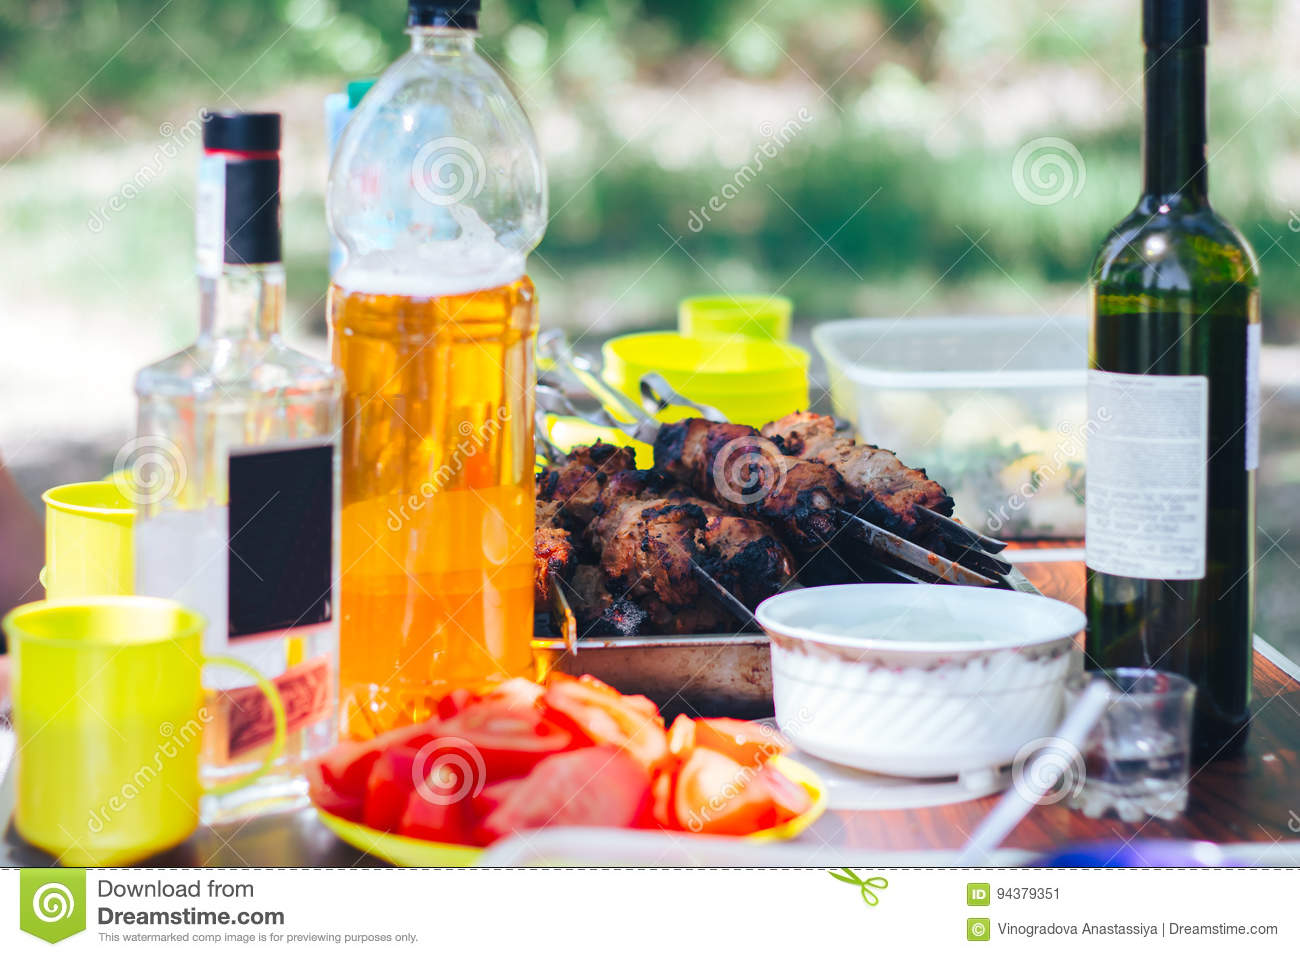 Barbecue on table with wine beer nature